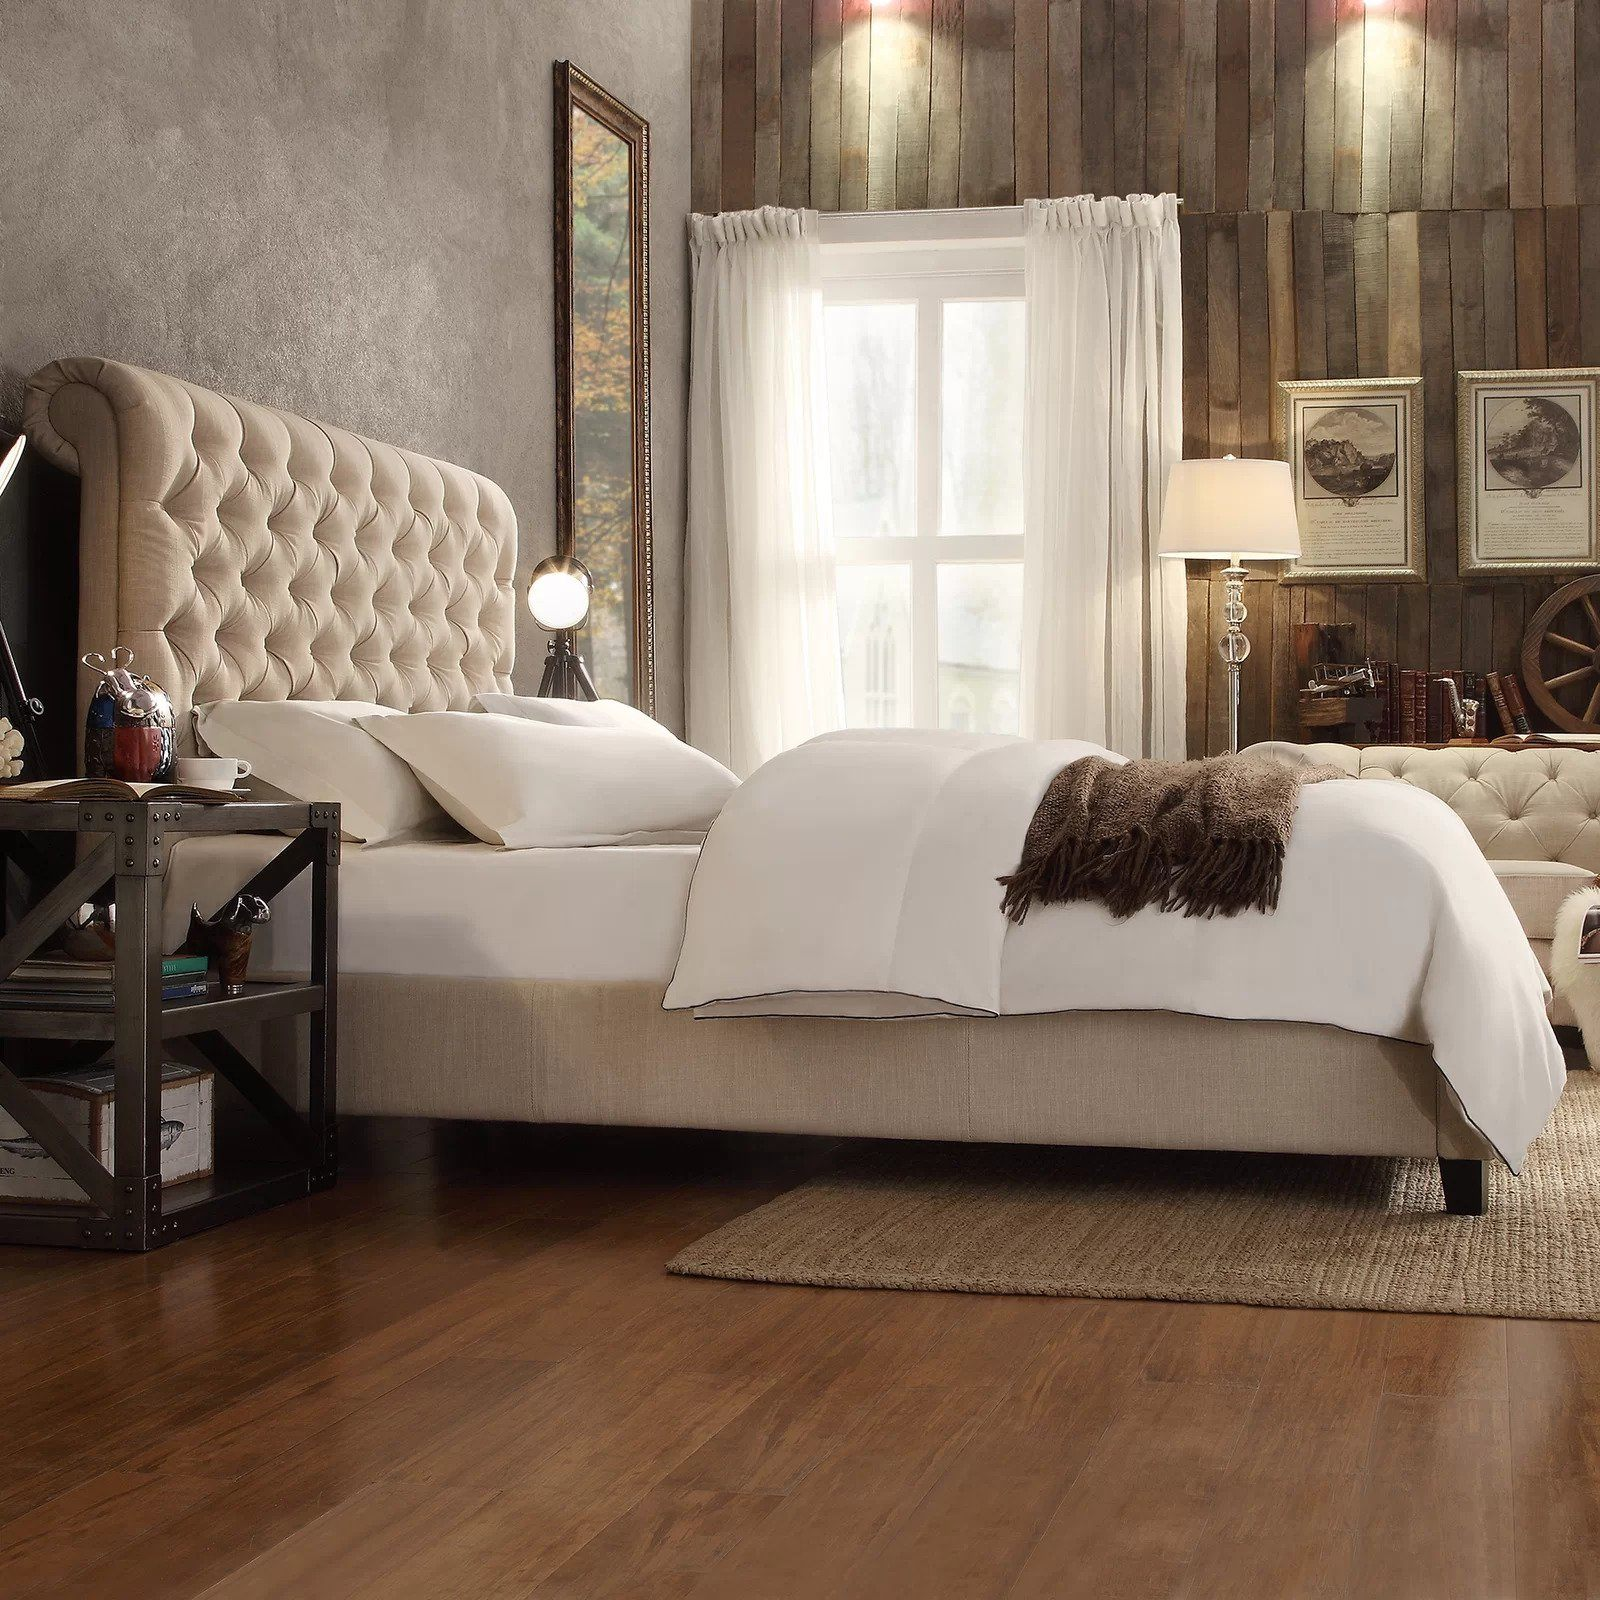 - Chesterfield Cream Chenille Normandy Sleigh Bed Frame My Vogue Living